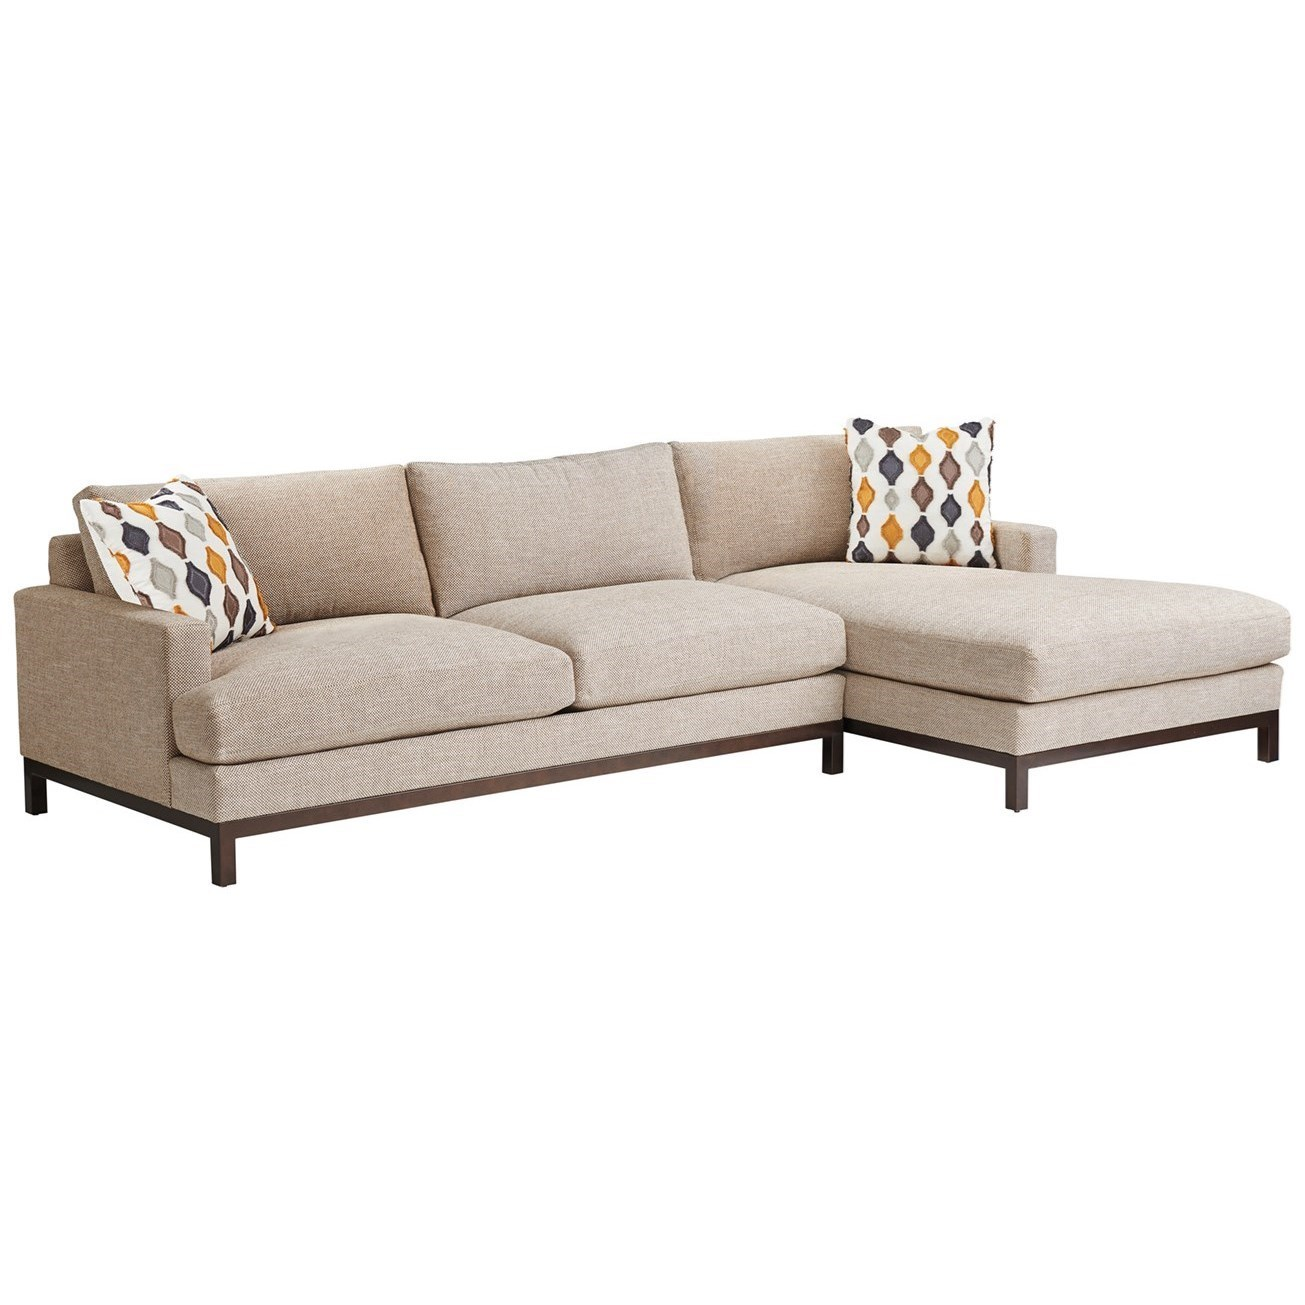 2-Piece Sectional Sofa with Bronze Base & RAF Chaise Lounge